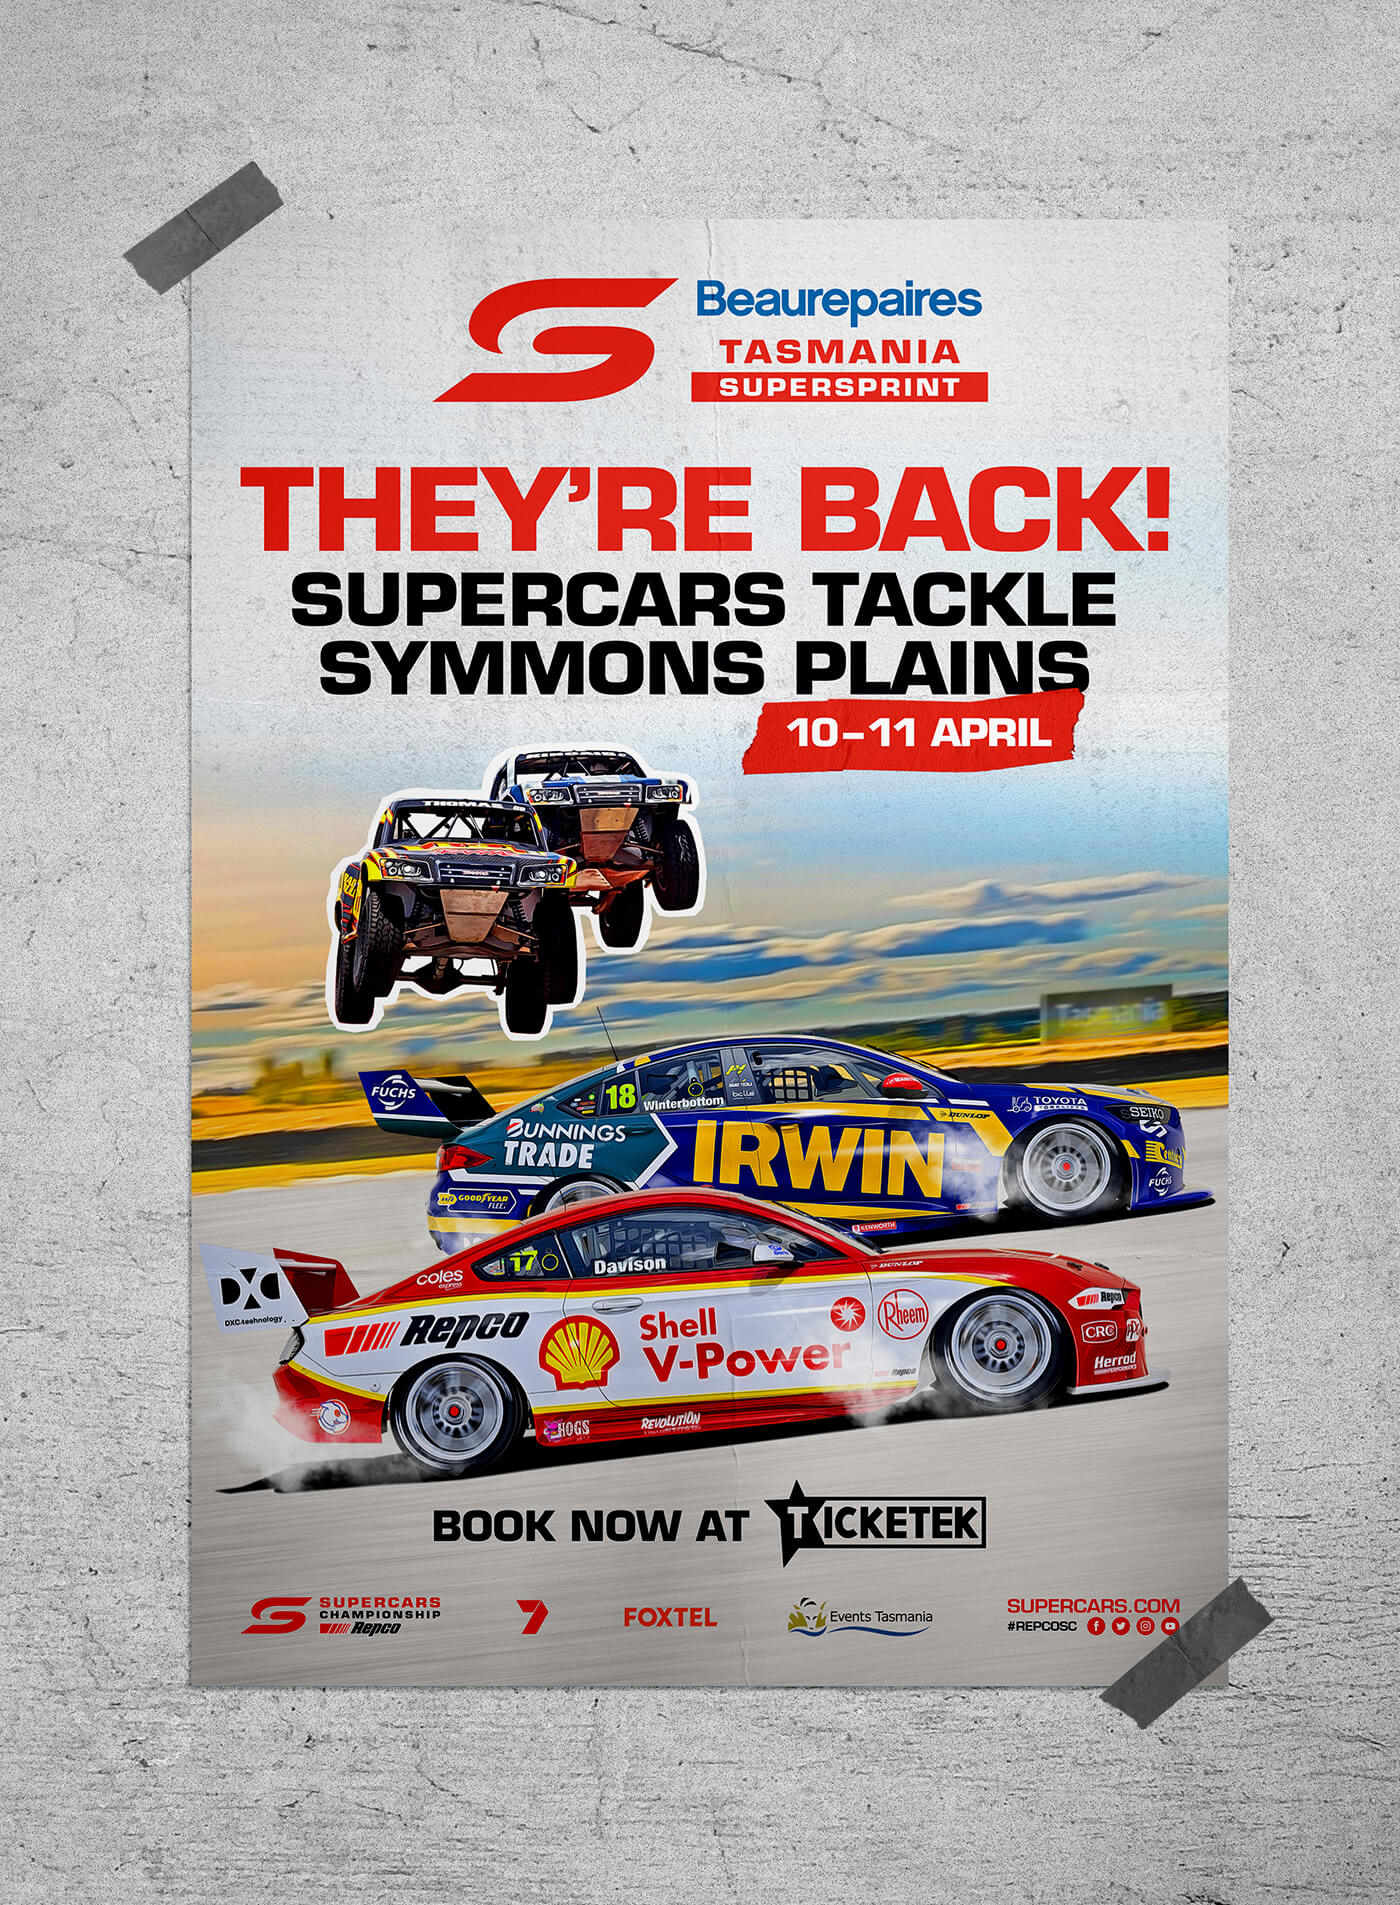 Poster of the Tasmania Supersprint event